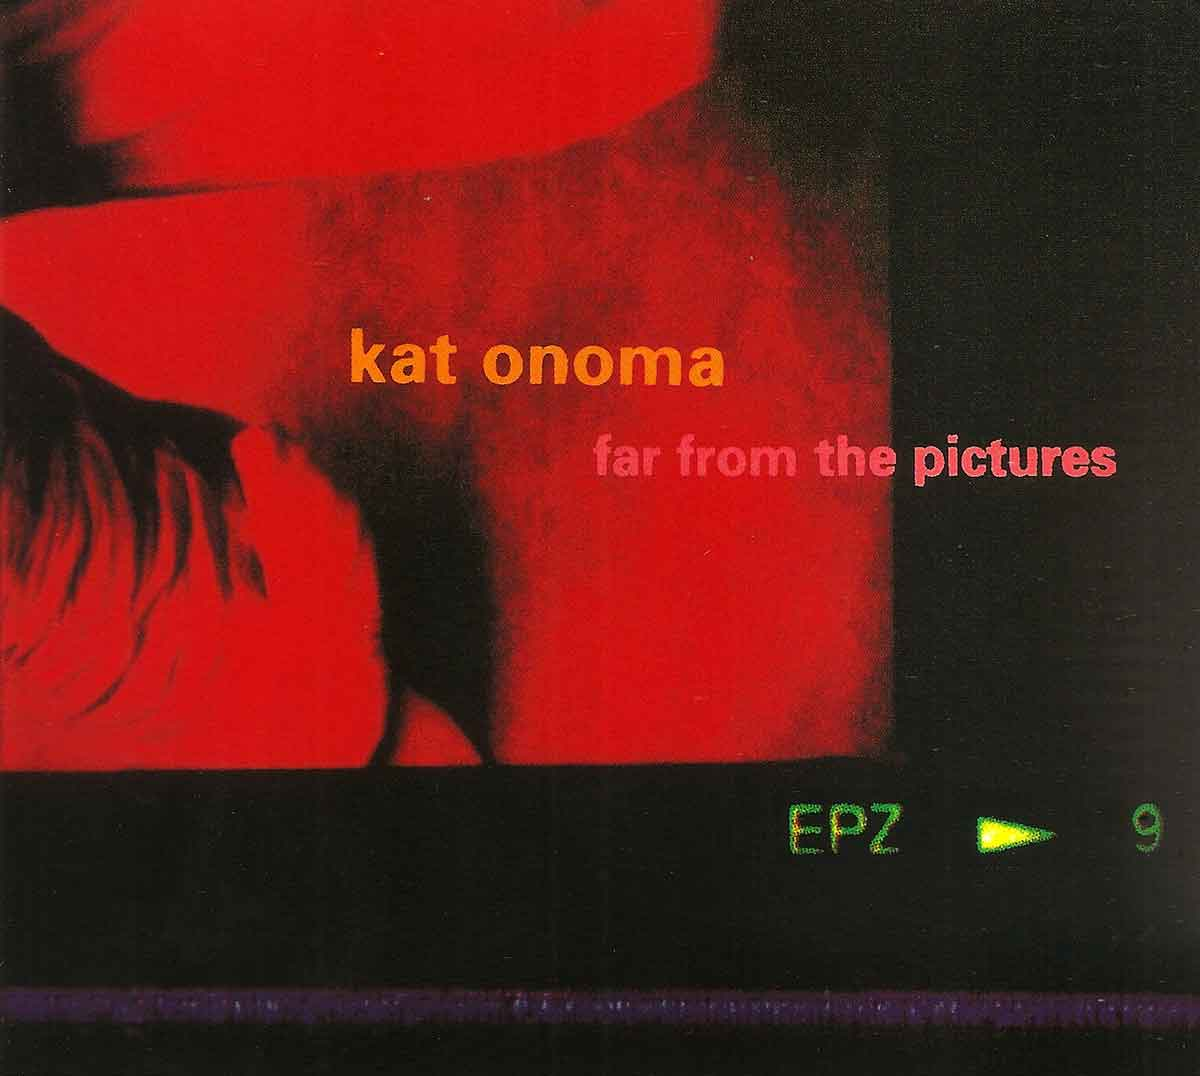 06-far from the pictures - kat onoma